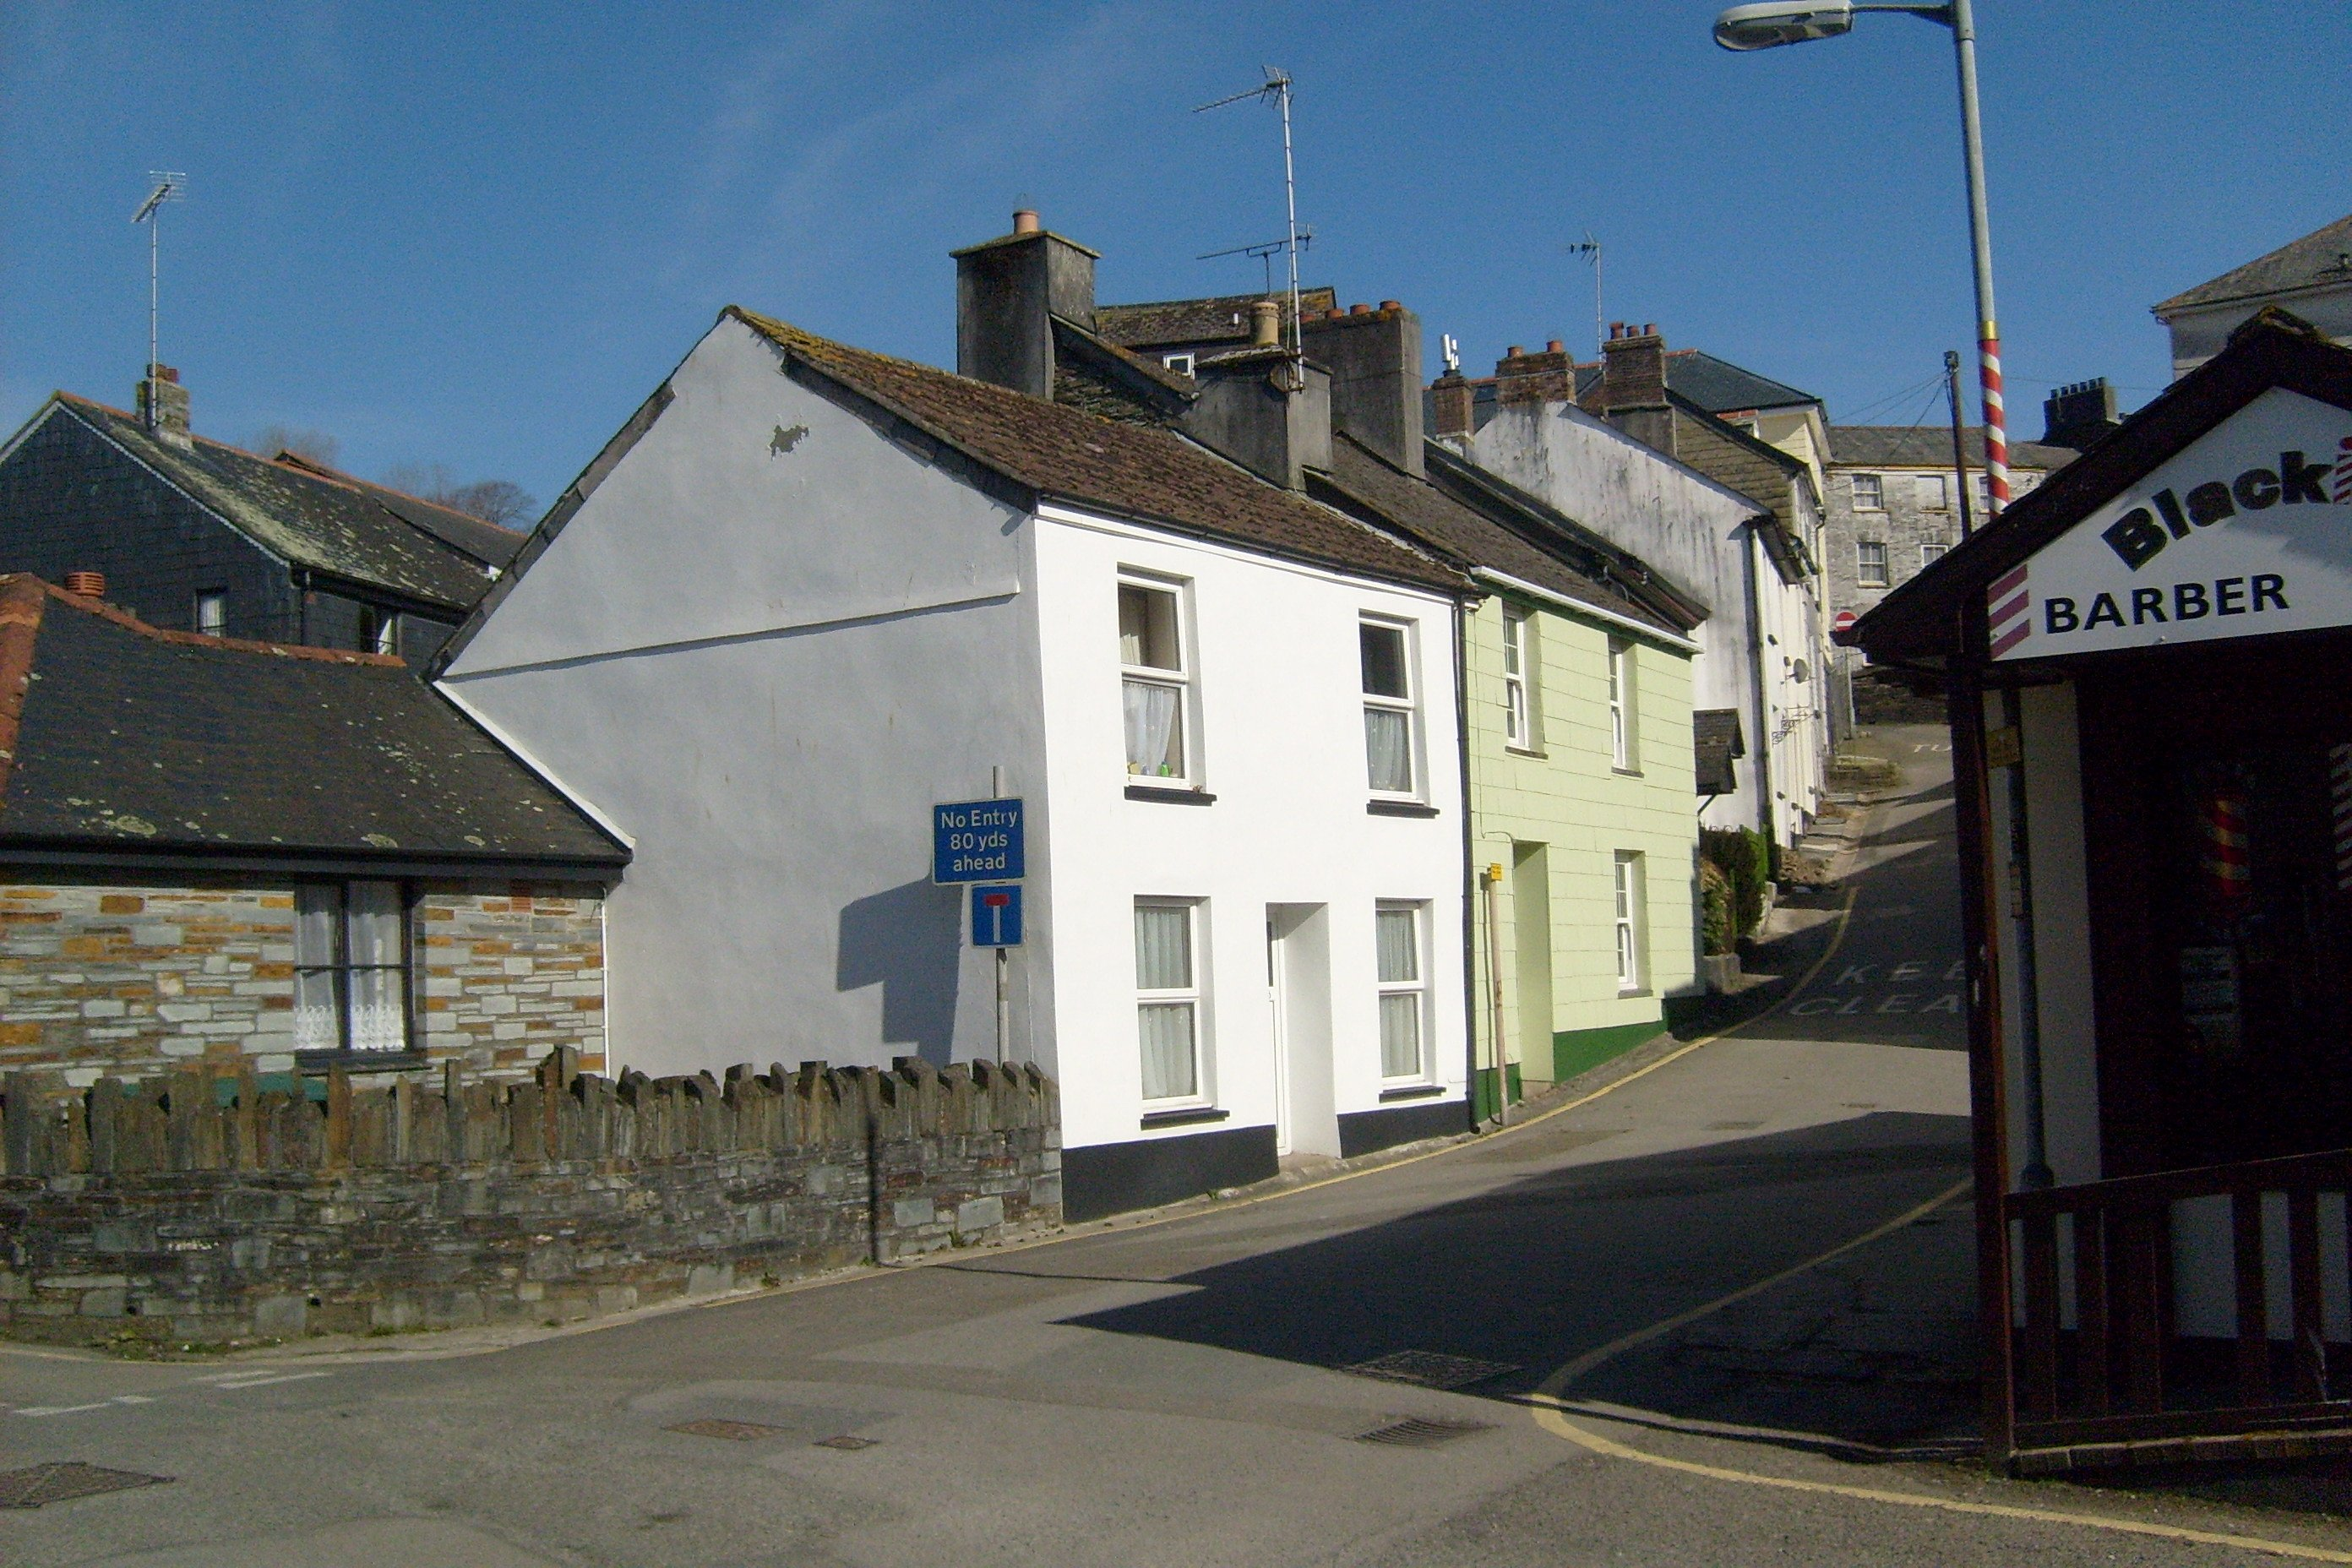 3 Bedroom Furnished House To Rent On Cannon Hill, Liskeard, PL14 By Private  Landlord